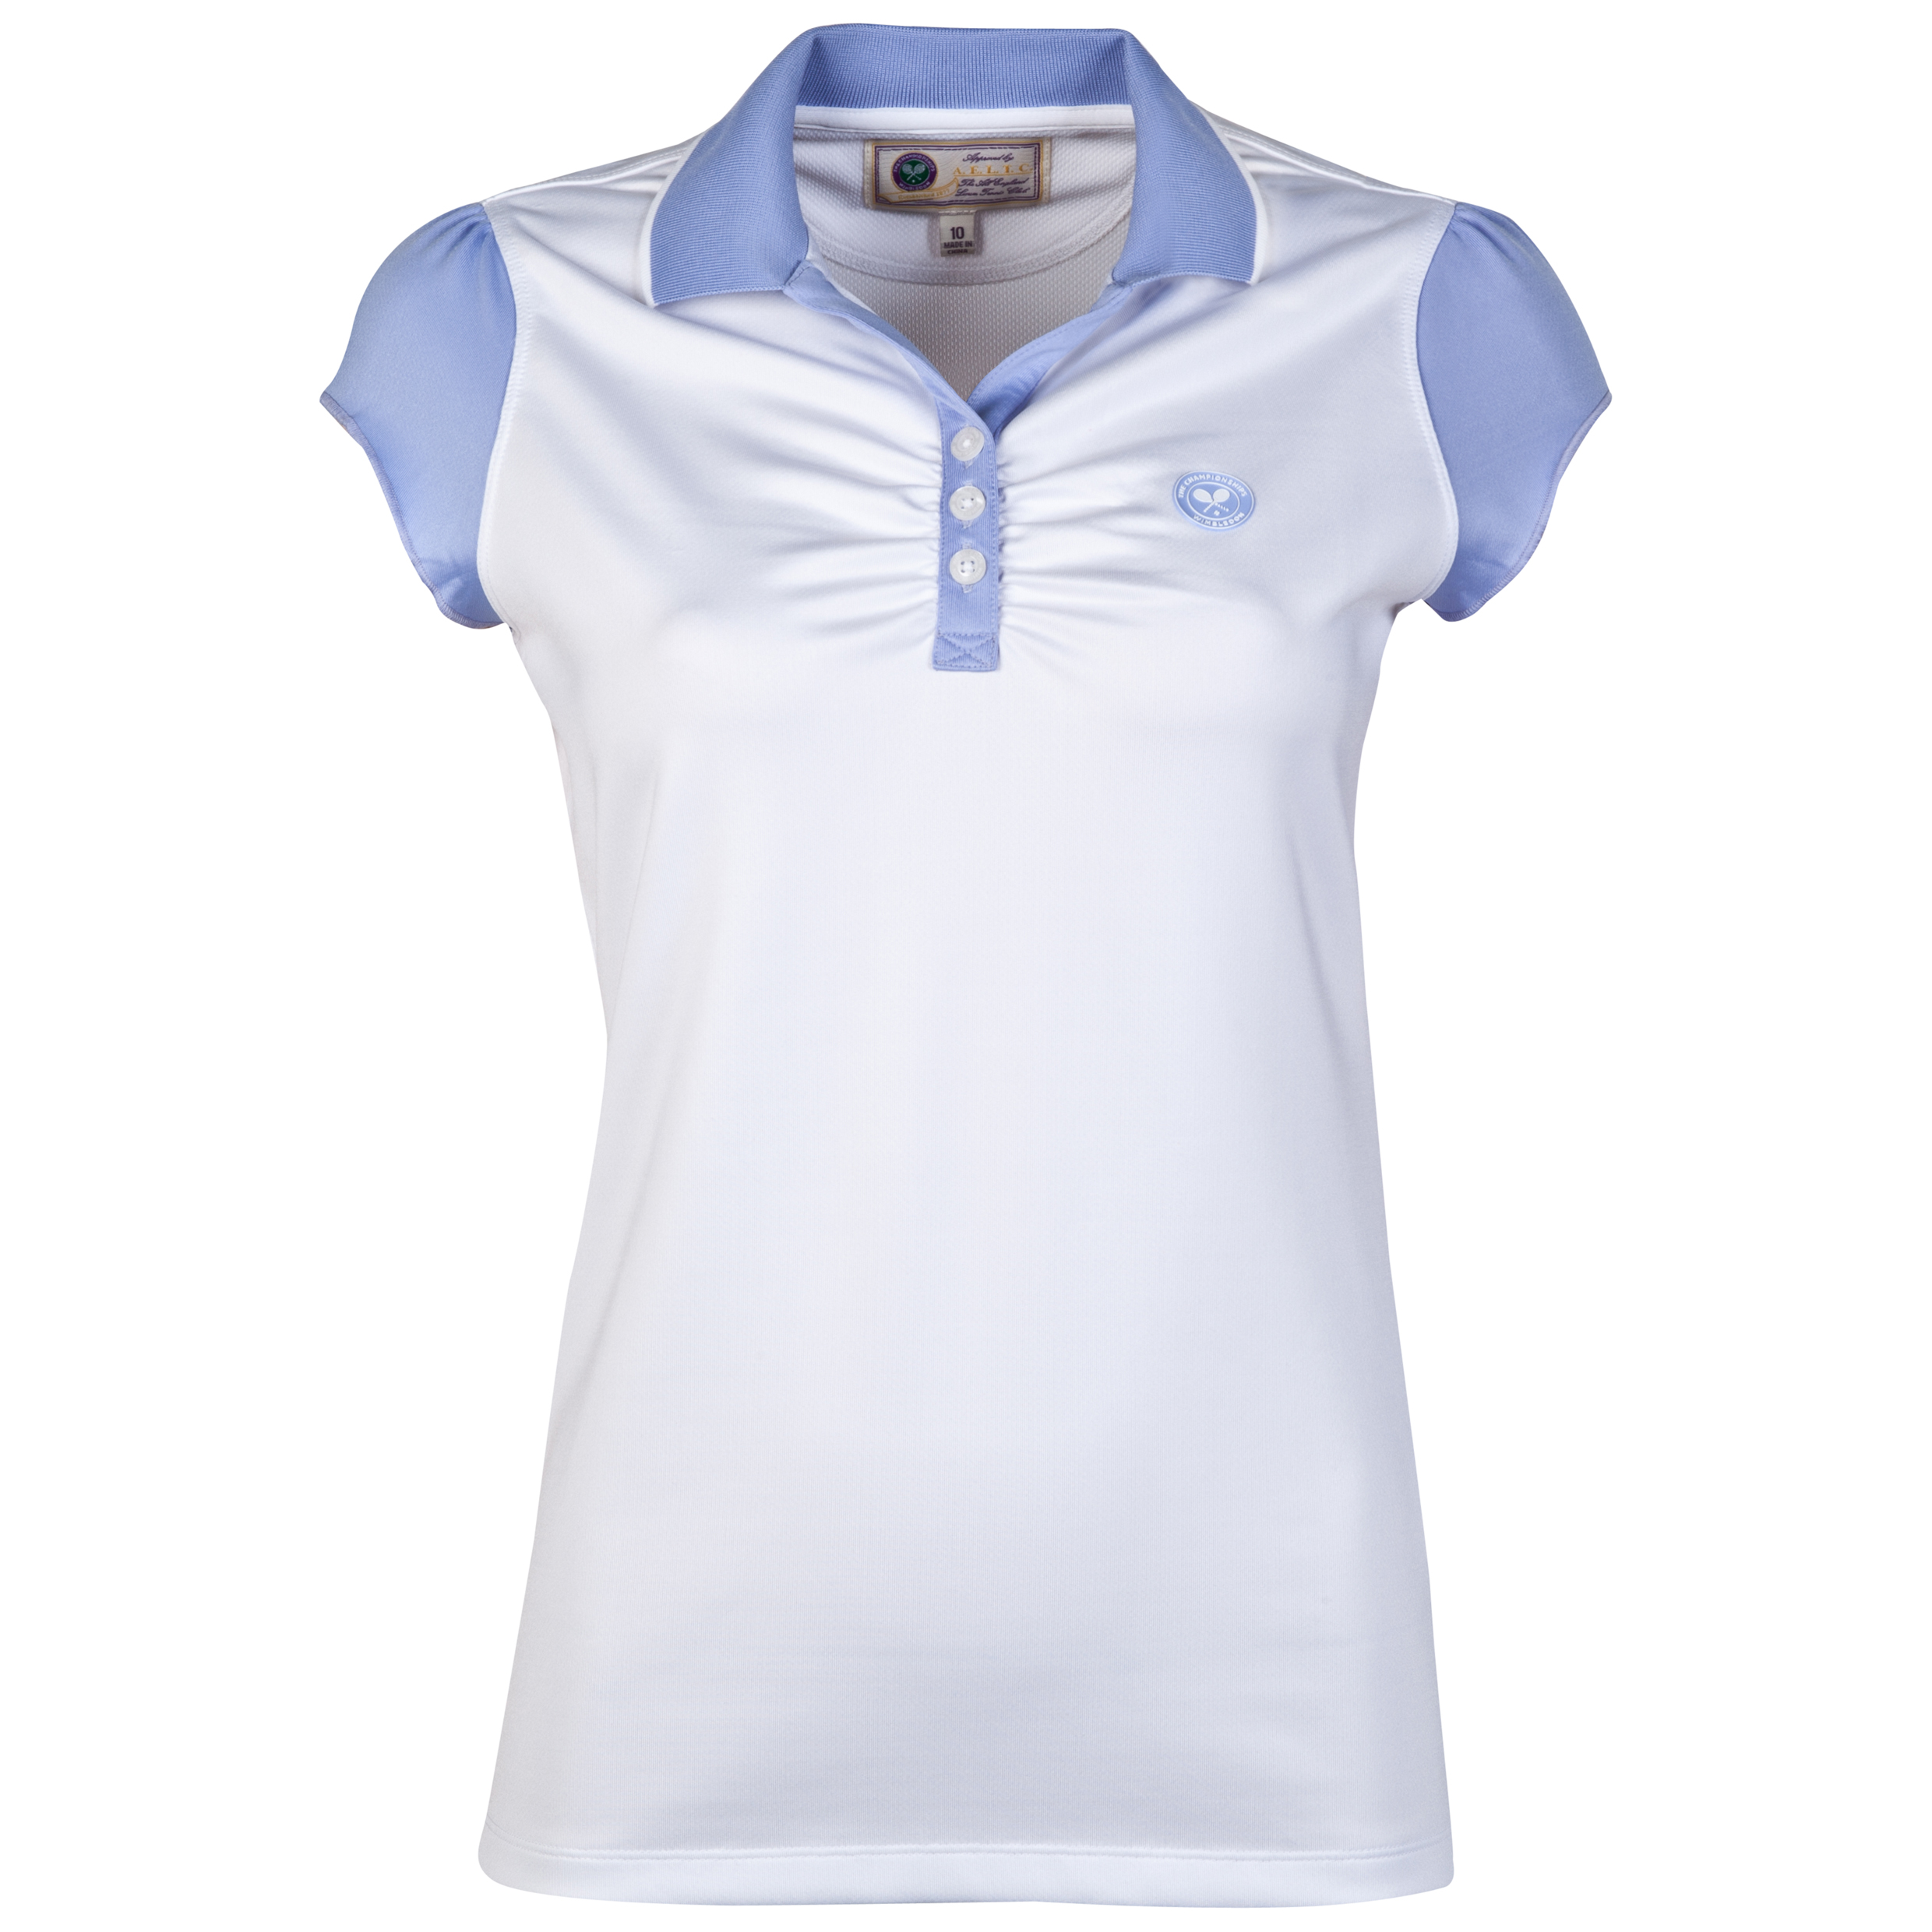 Wimbledon Capped Sleeve Top - Ladies White